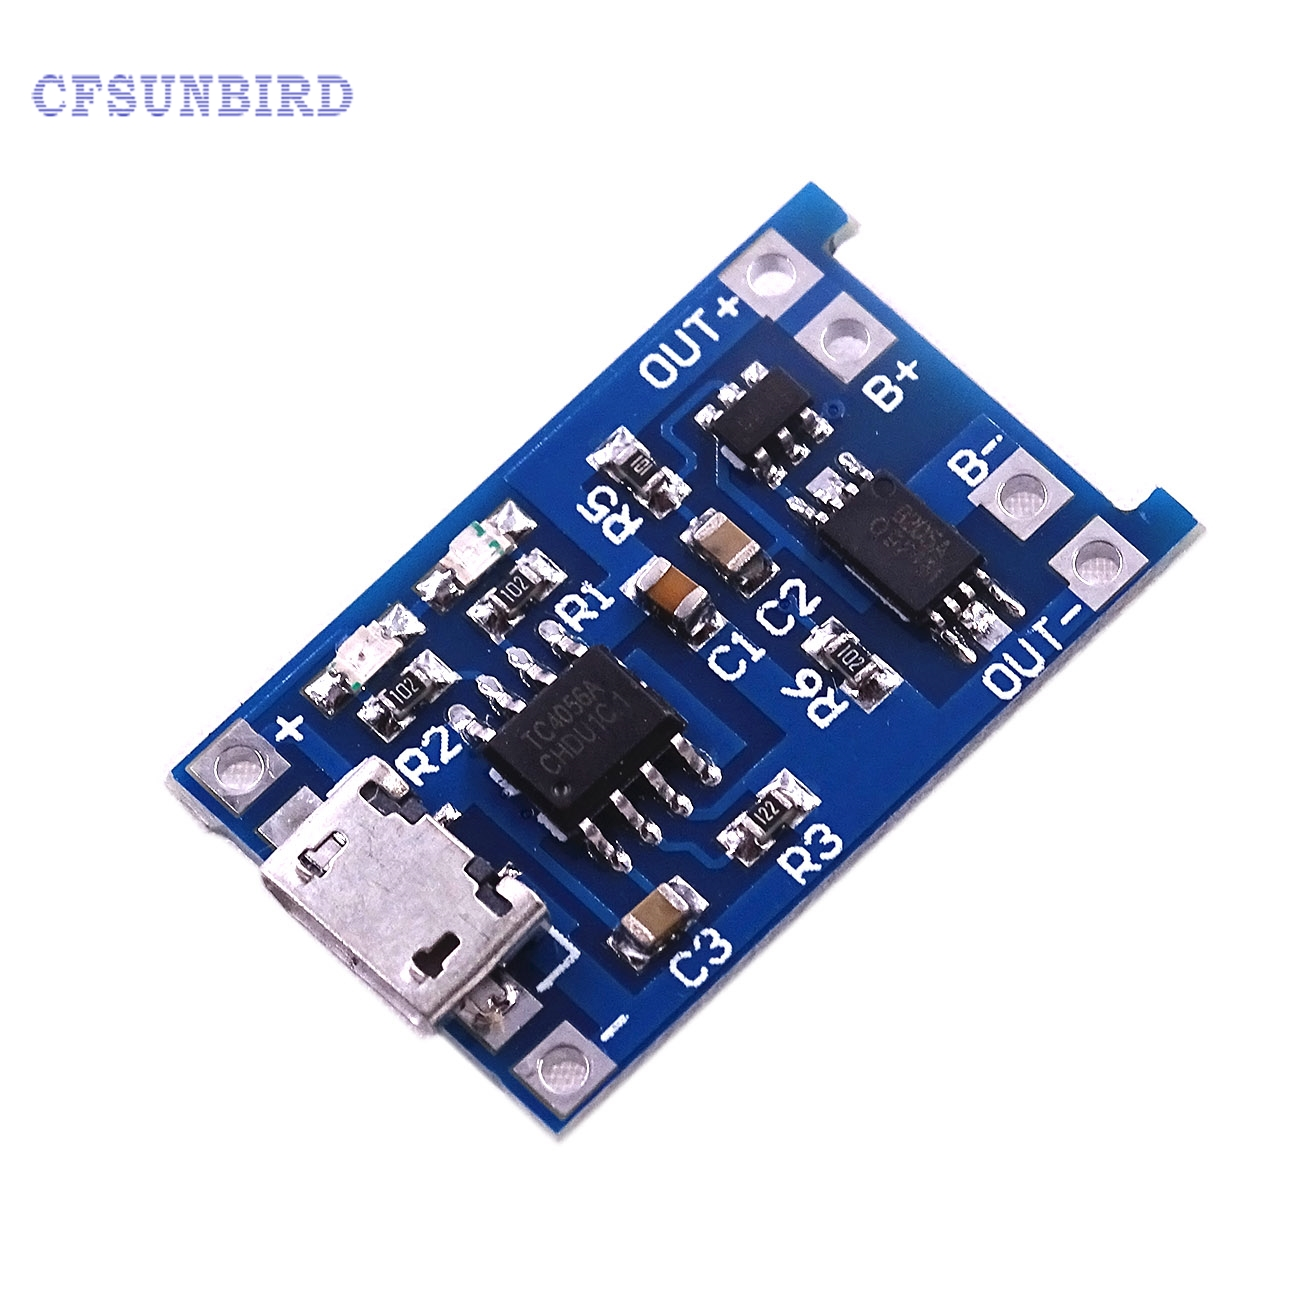 1000pcs Micro USB 5V 1A 18650 TP4056 Lithium Battery Charger Module Charging Board With Protection Dual Functions 10pcs lot 2s li ion lithium battery 18650 charger protection module board 3a 7 4v 8 4v free shipping